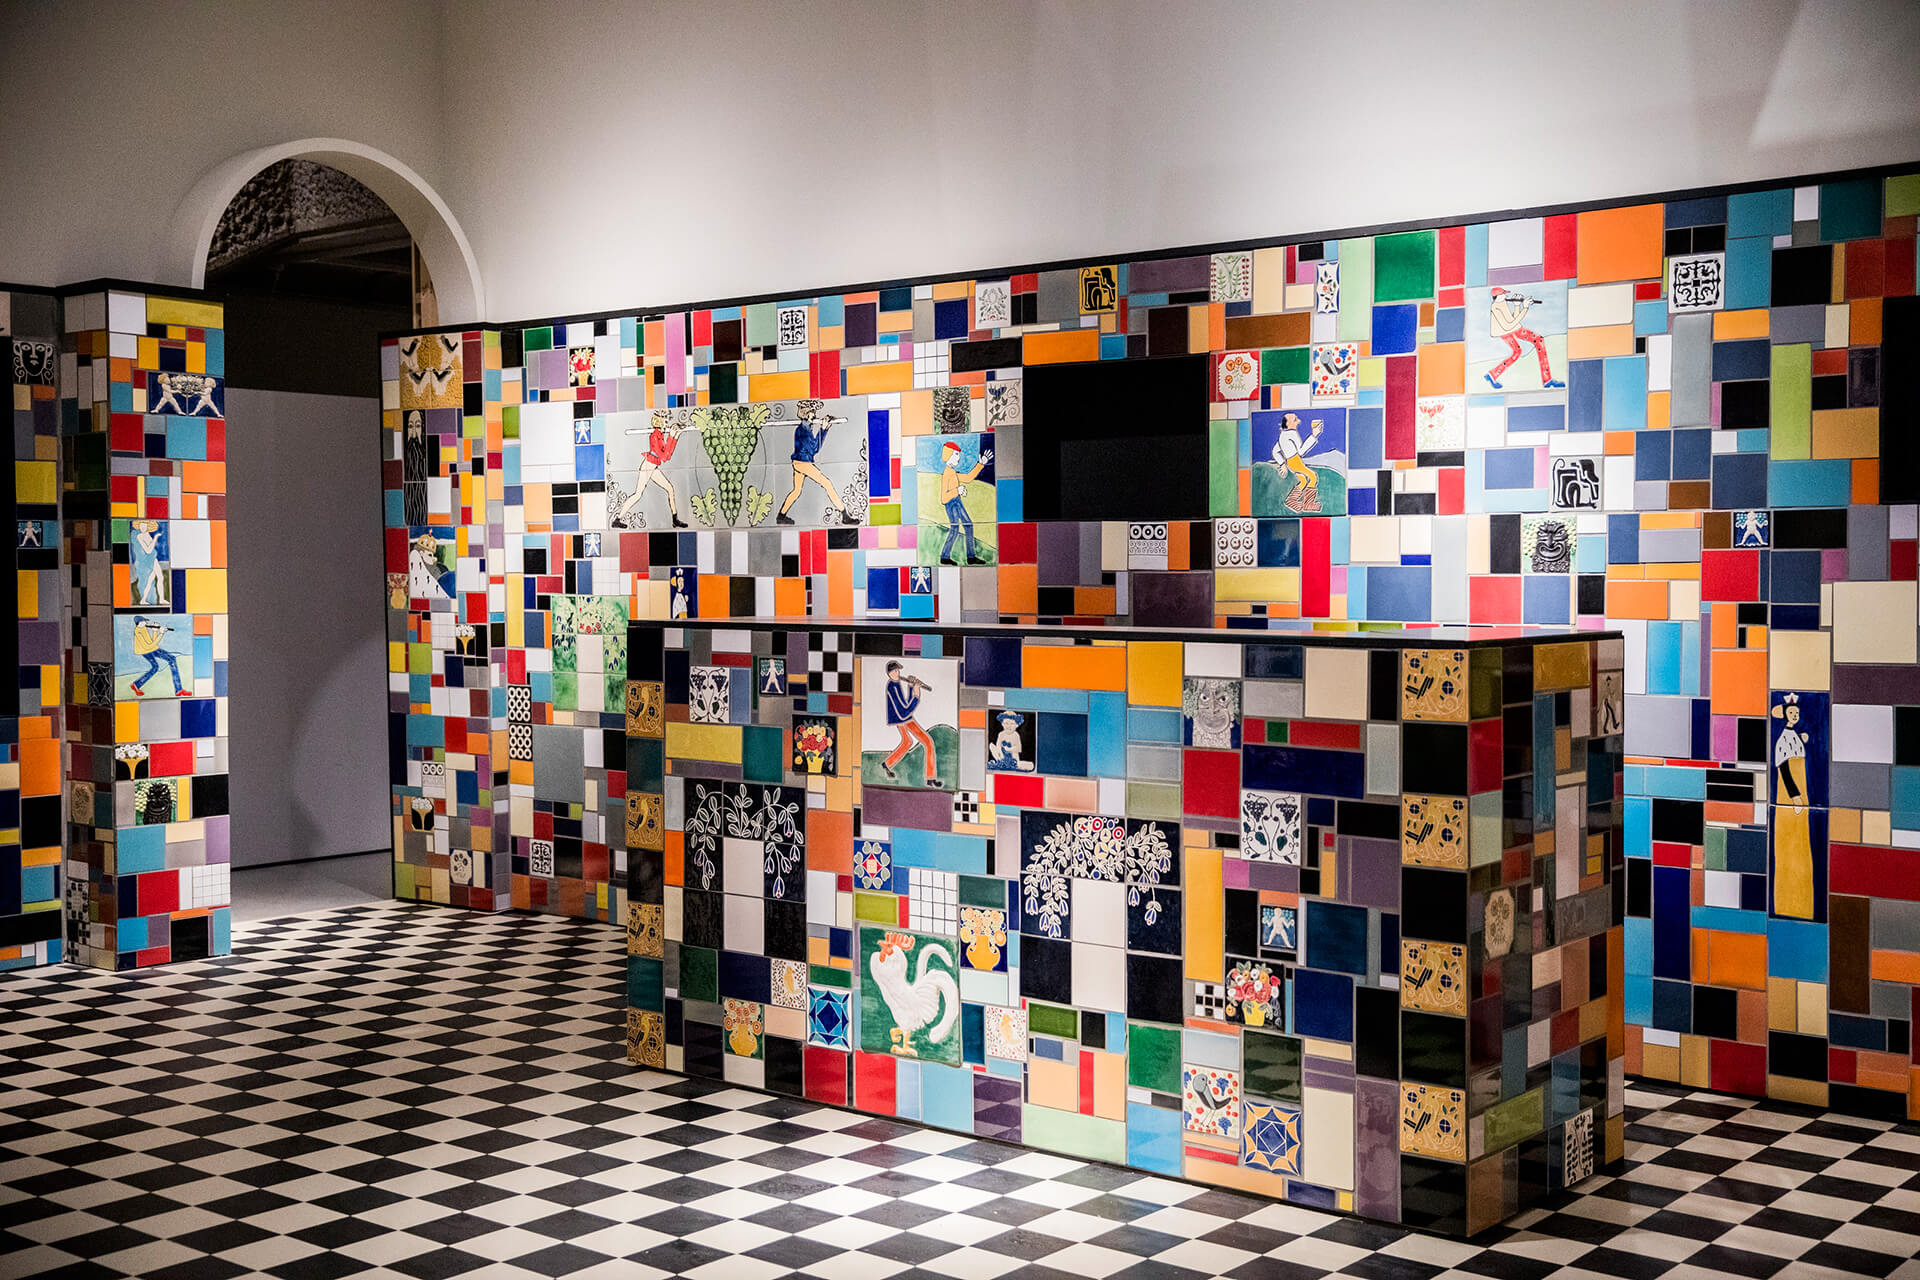 A recreation of the tiled bar from Vienna's Cabaret Fledermaus comes to life at weekends when drinks are served  | Into the Night: Cabarets and Clubs in Modern Art | Barbican Centee | STIRworld